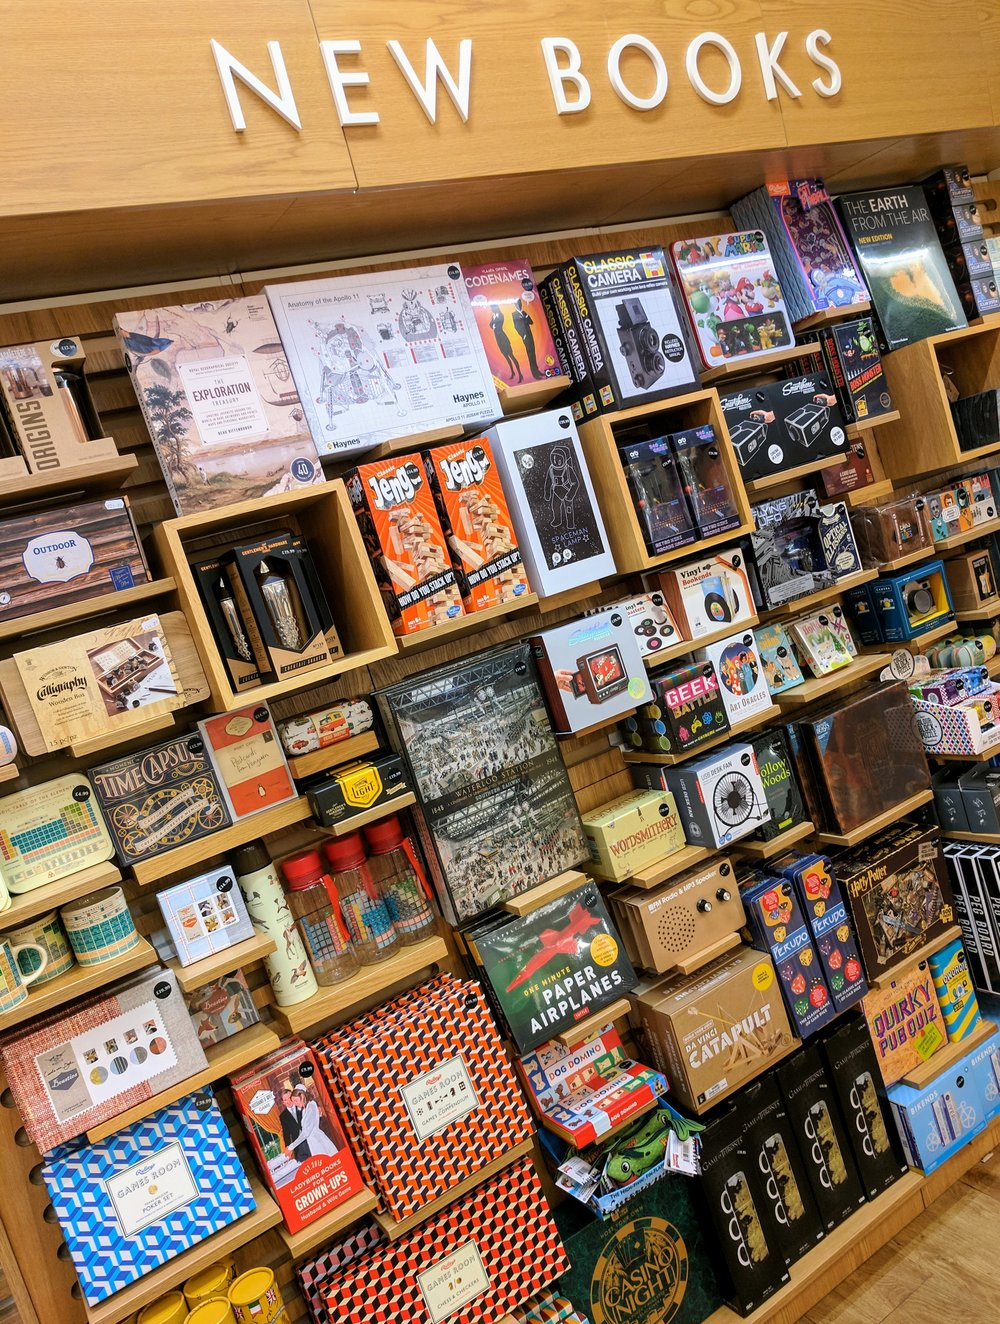 Spotted on the Waterstones' shop floor - mid 2017 - the 'New Books' section completely filled with toys, games and novelties.